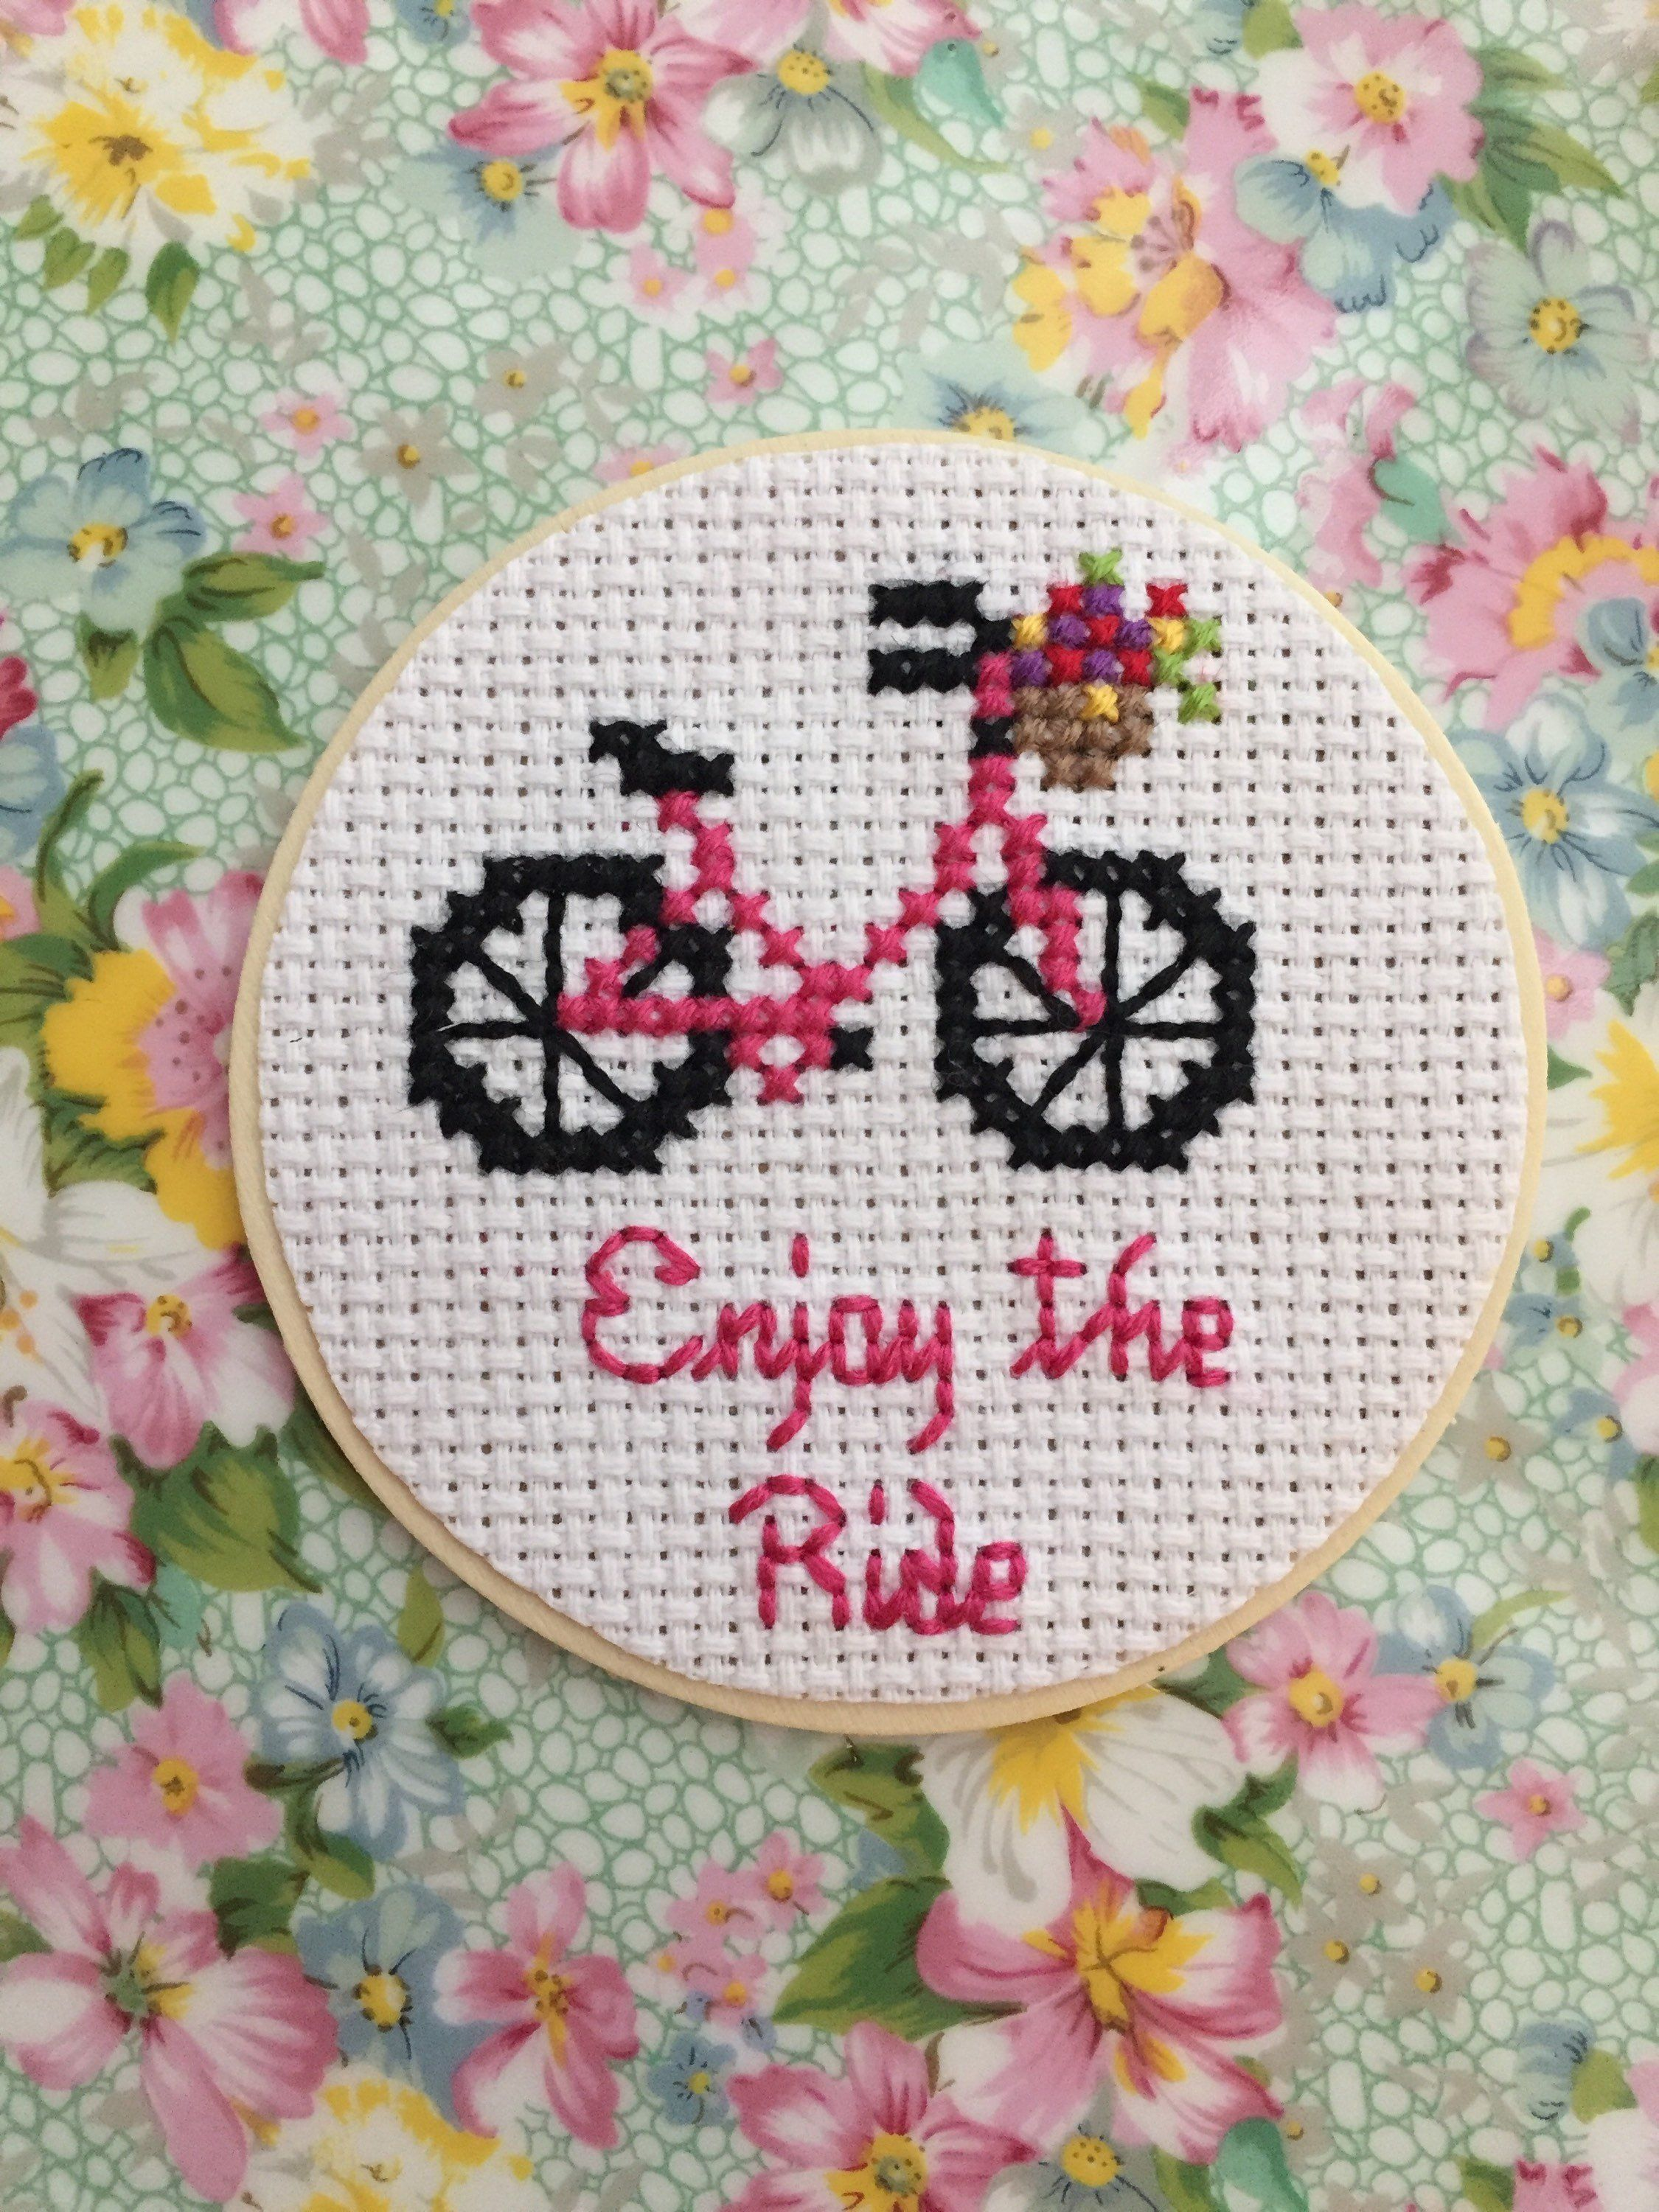 Enjoy The Ride Magnet Pink Bike With Flowers Magnet Wooden Etsy In 2020 Cross Stitch Embroidery Cross Stitch Rose Cross Stitch Cards